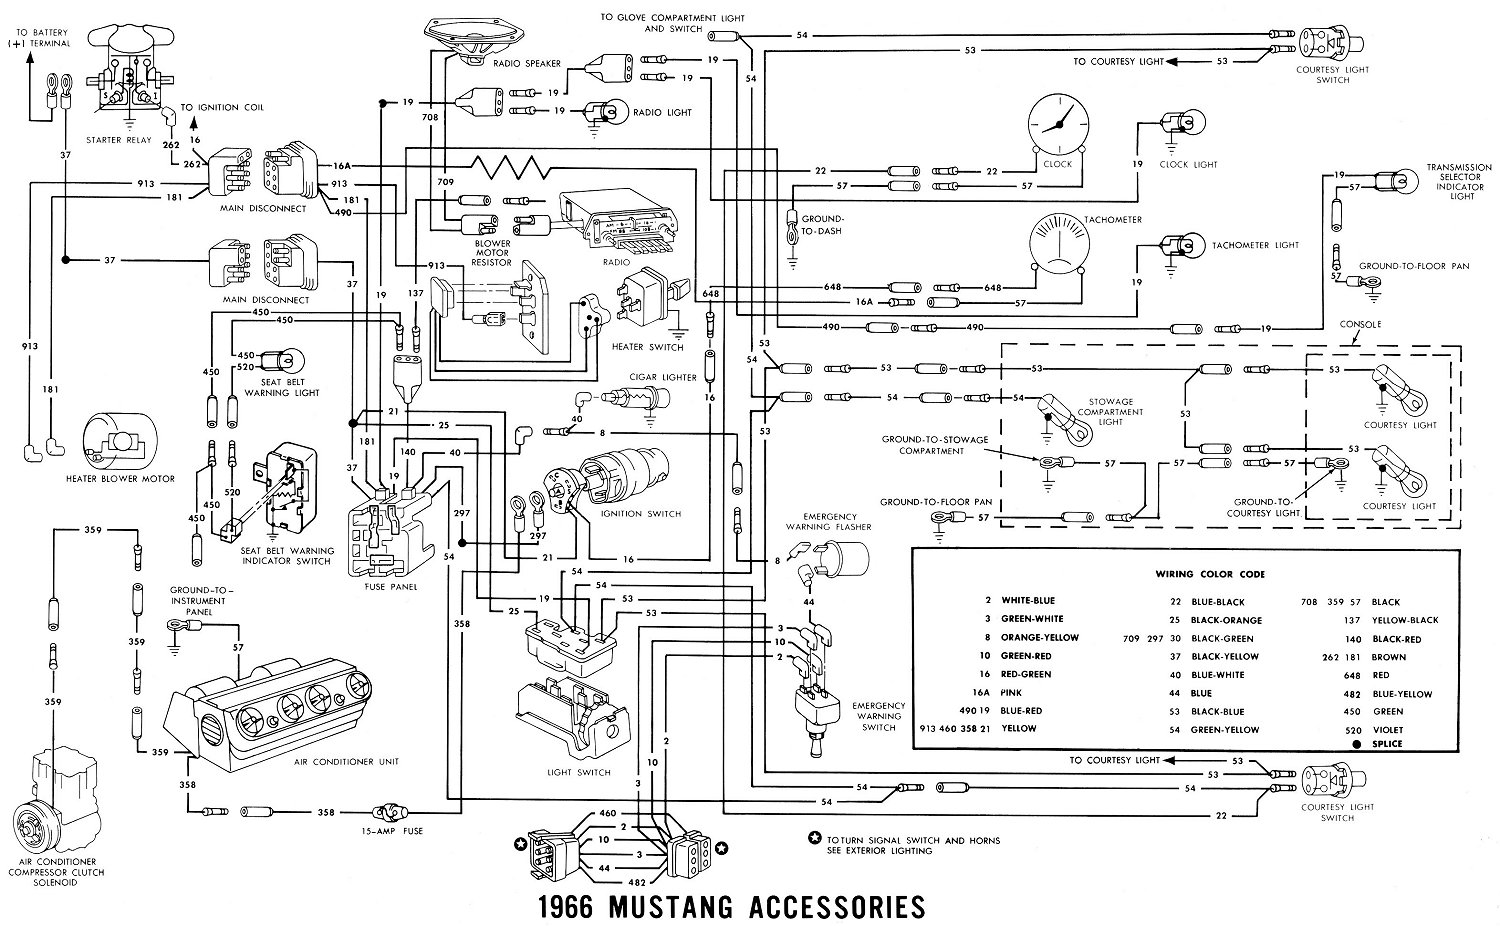 1963 c10 ignition switch schematic  1963  free engine image for user manual download